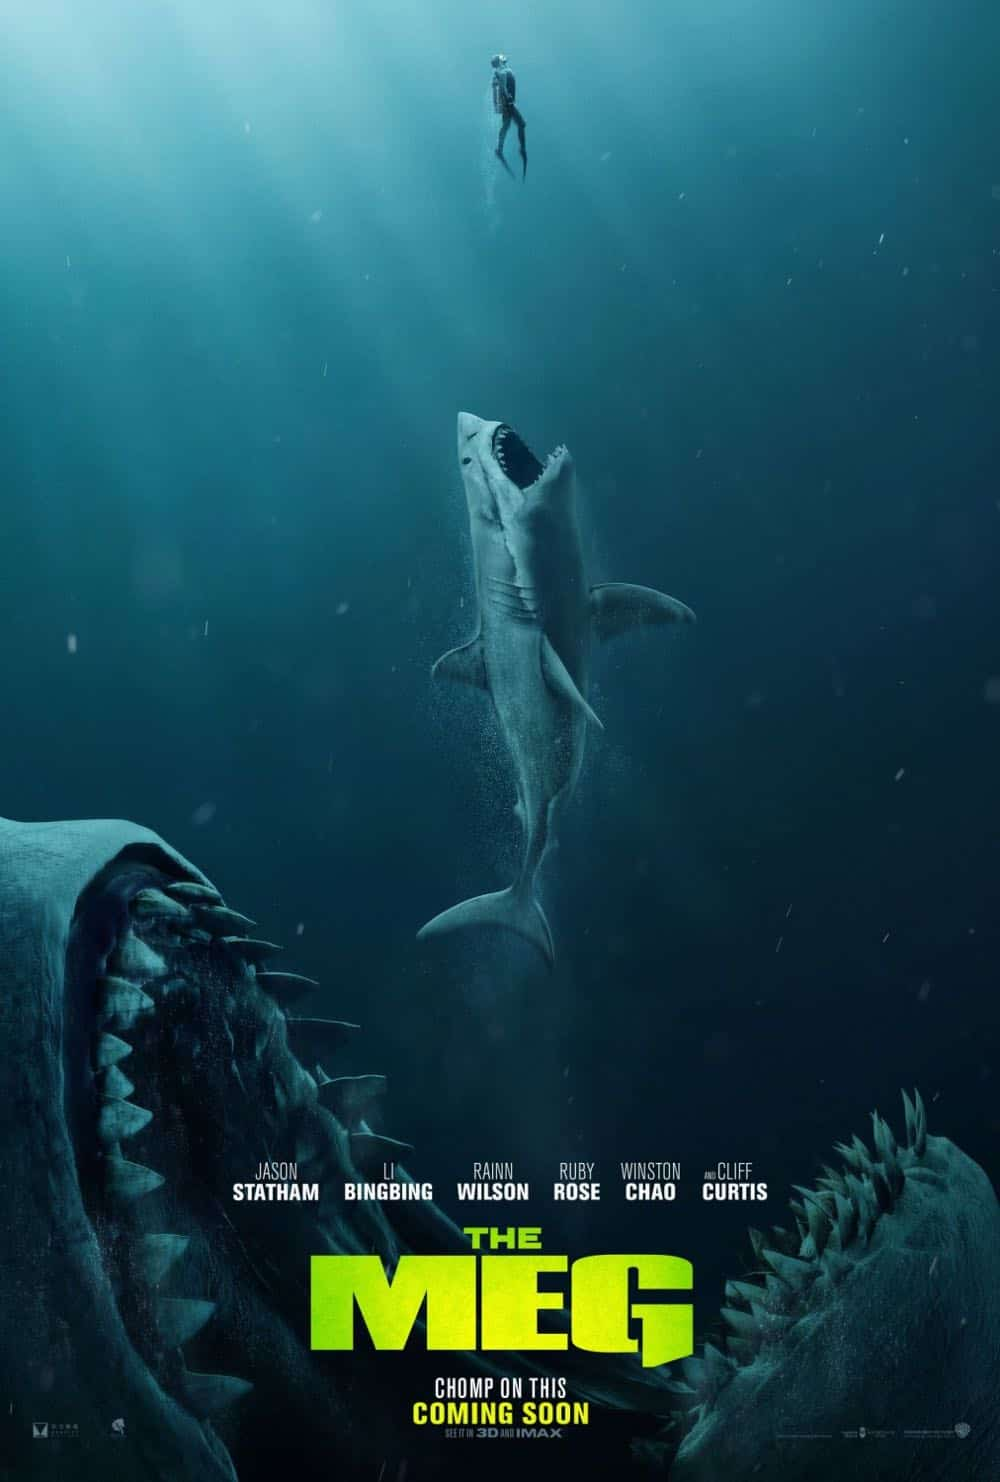 Source: https://seat42f.com/the-meg-movie-trailer-poster.html